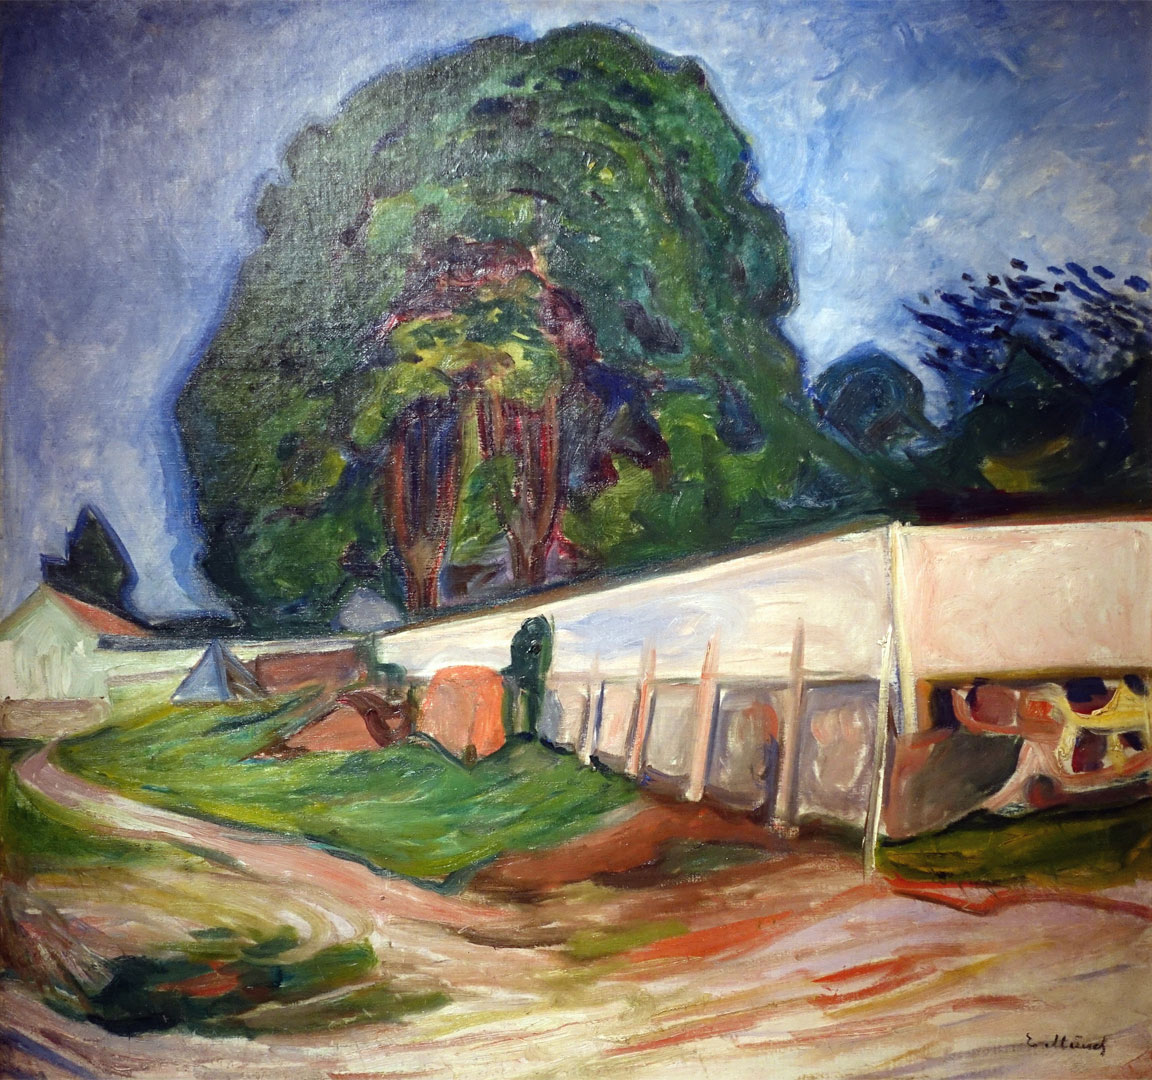 Munch - Notte d estate ad Asgaardstrand - Nuit d ete a Asgaardstrand - Summer Night at Asgaardstrand - 1904